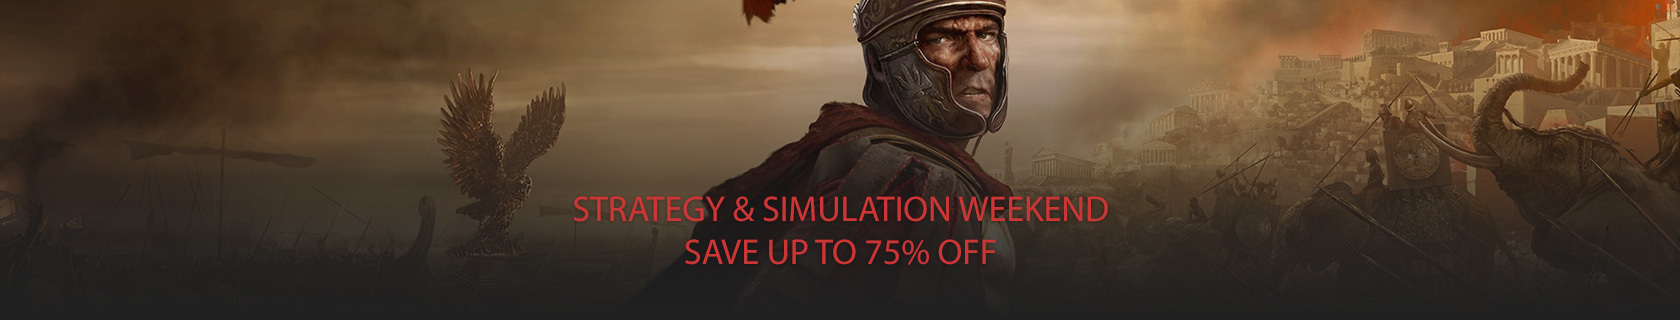 Strategy & Simulation Weekend